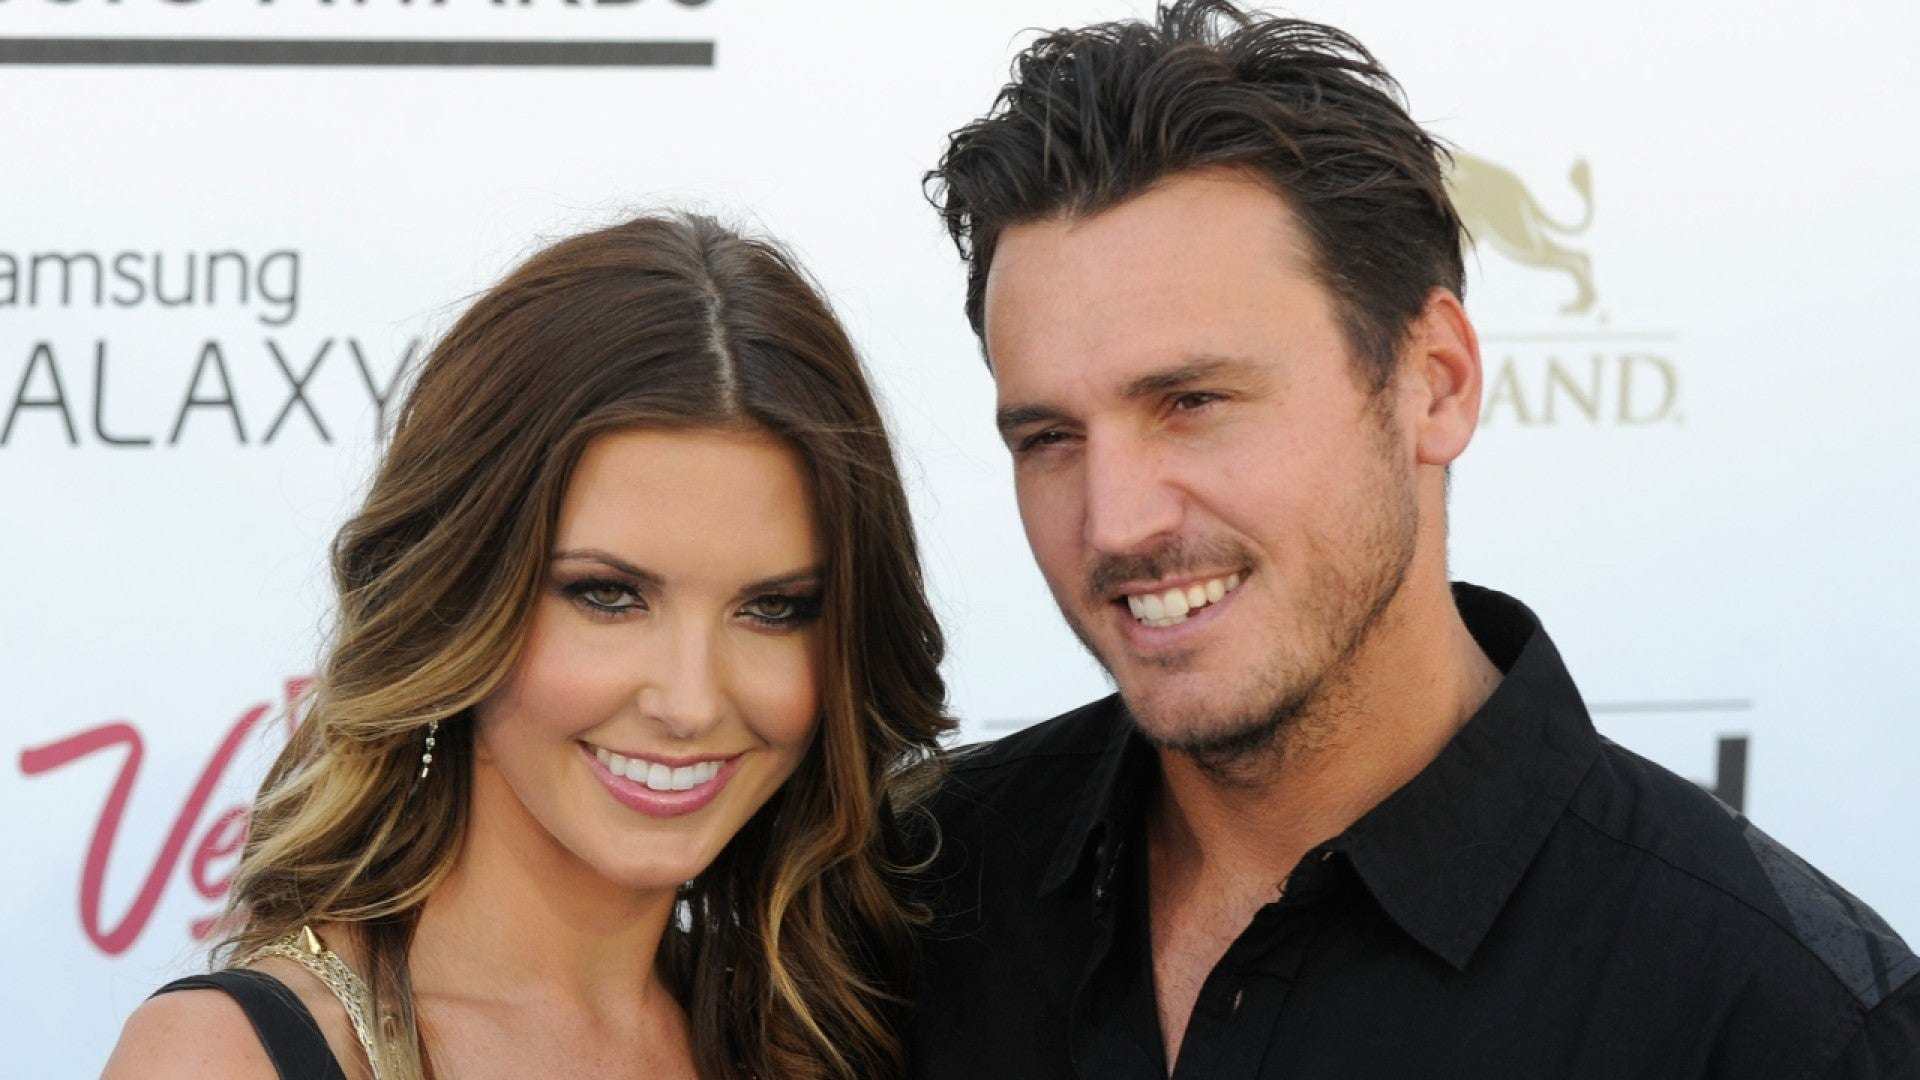 What Happened Between Audrina And Corey.